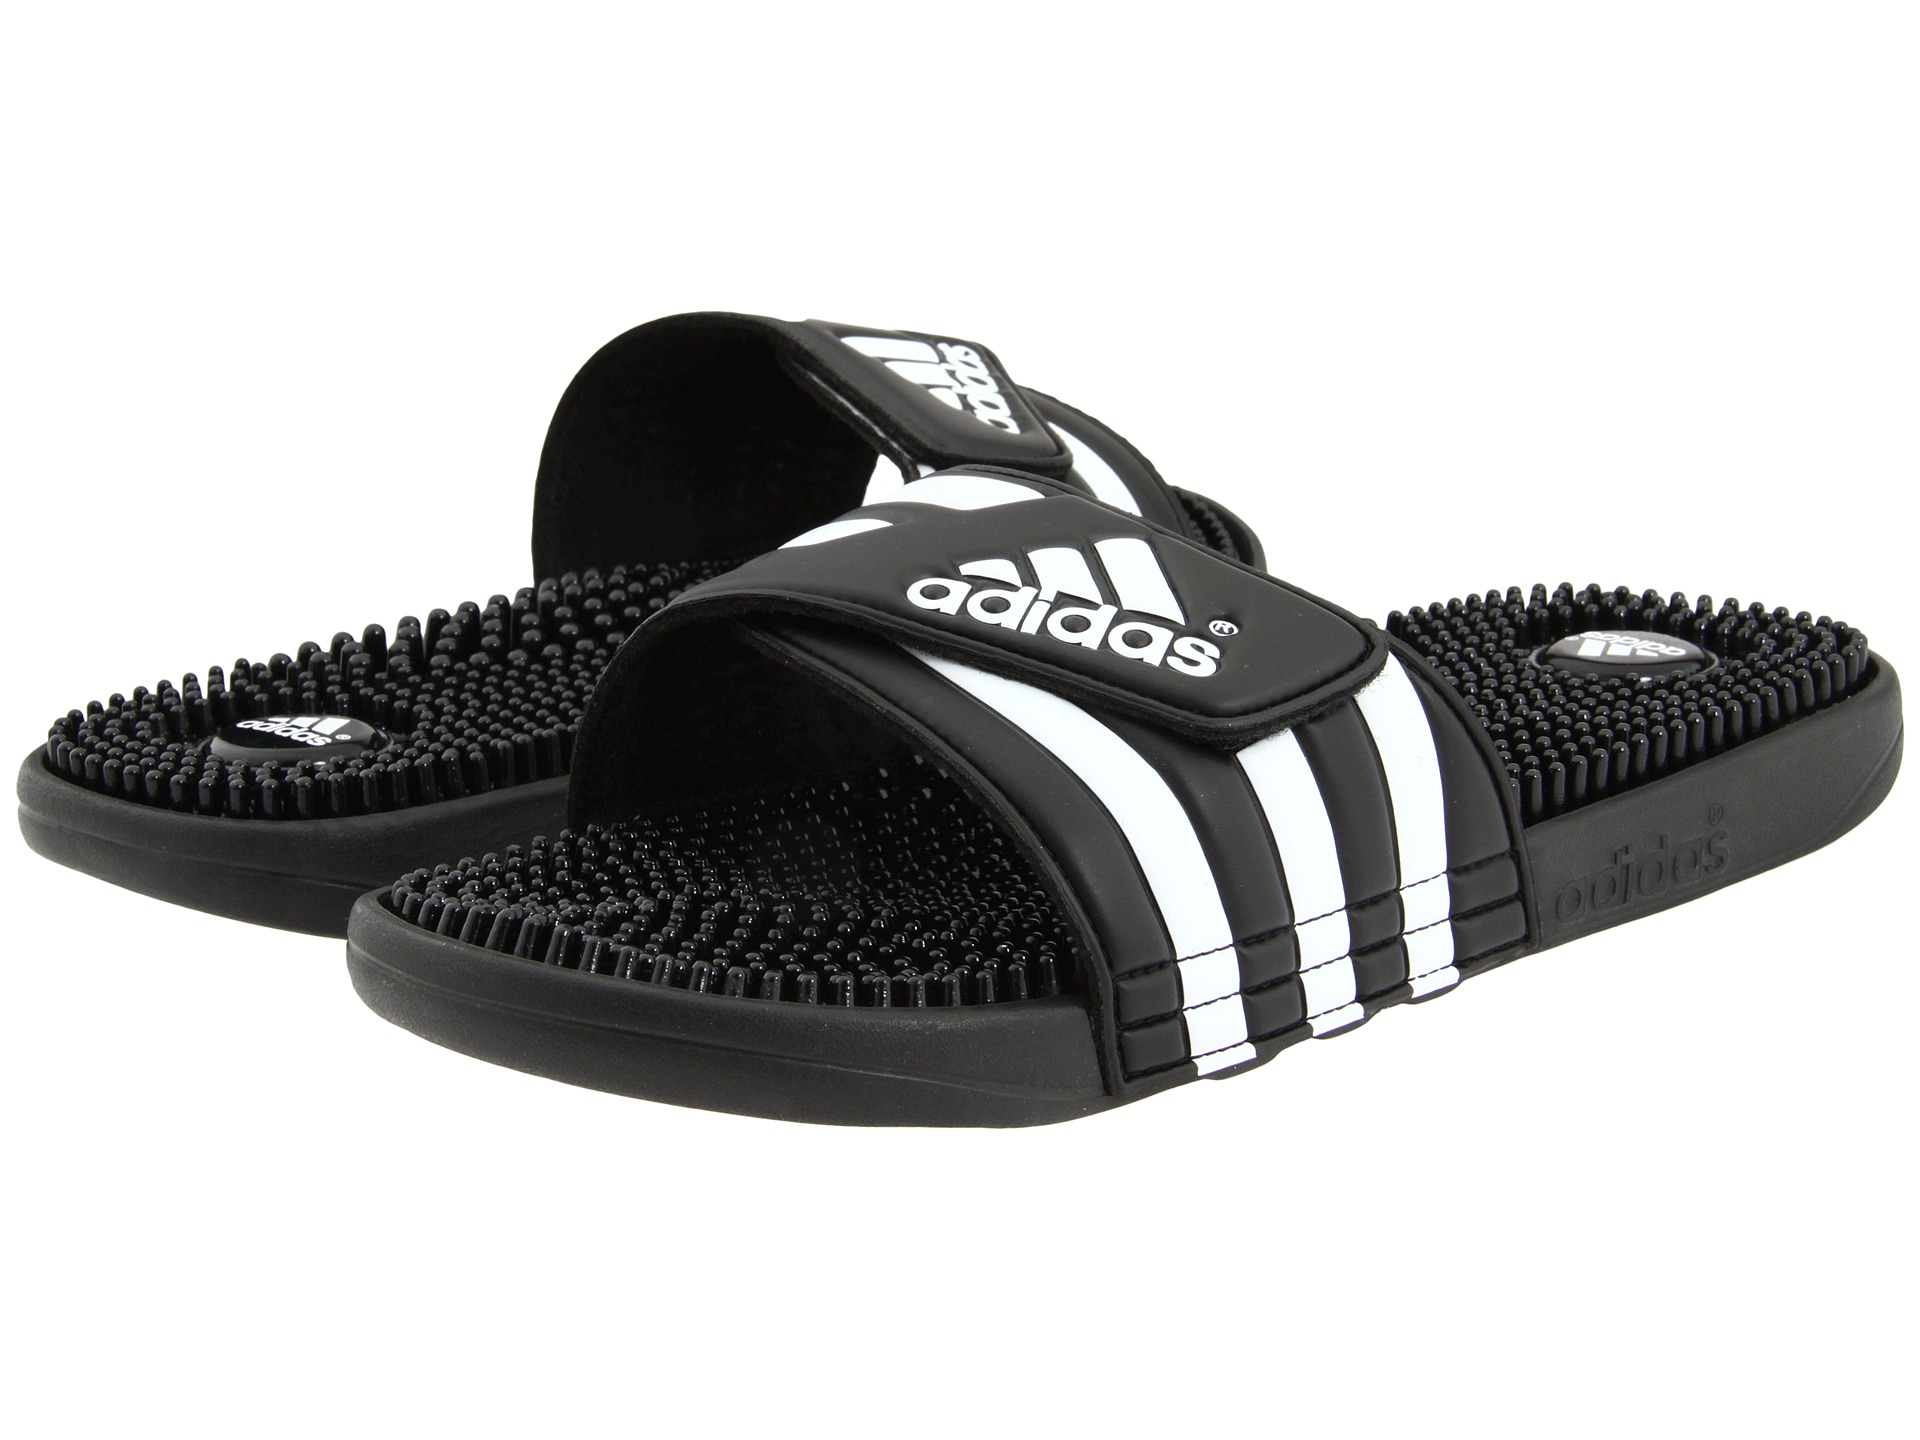 S Shoes Adidas Slides Outfit